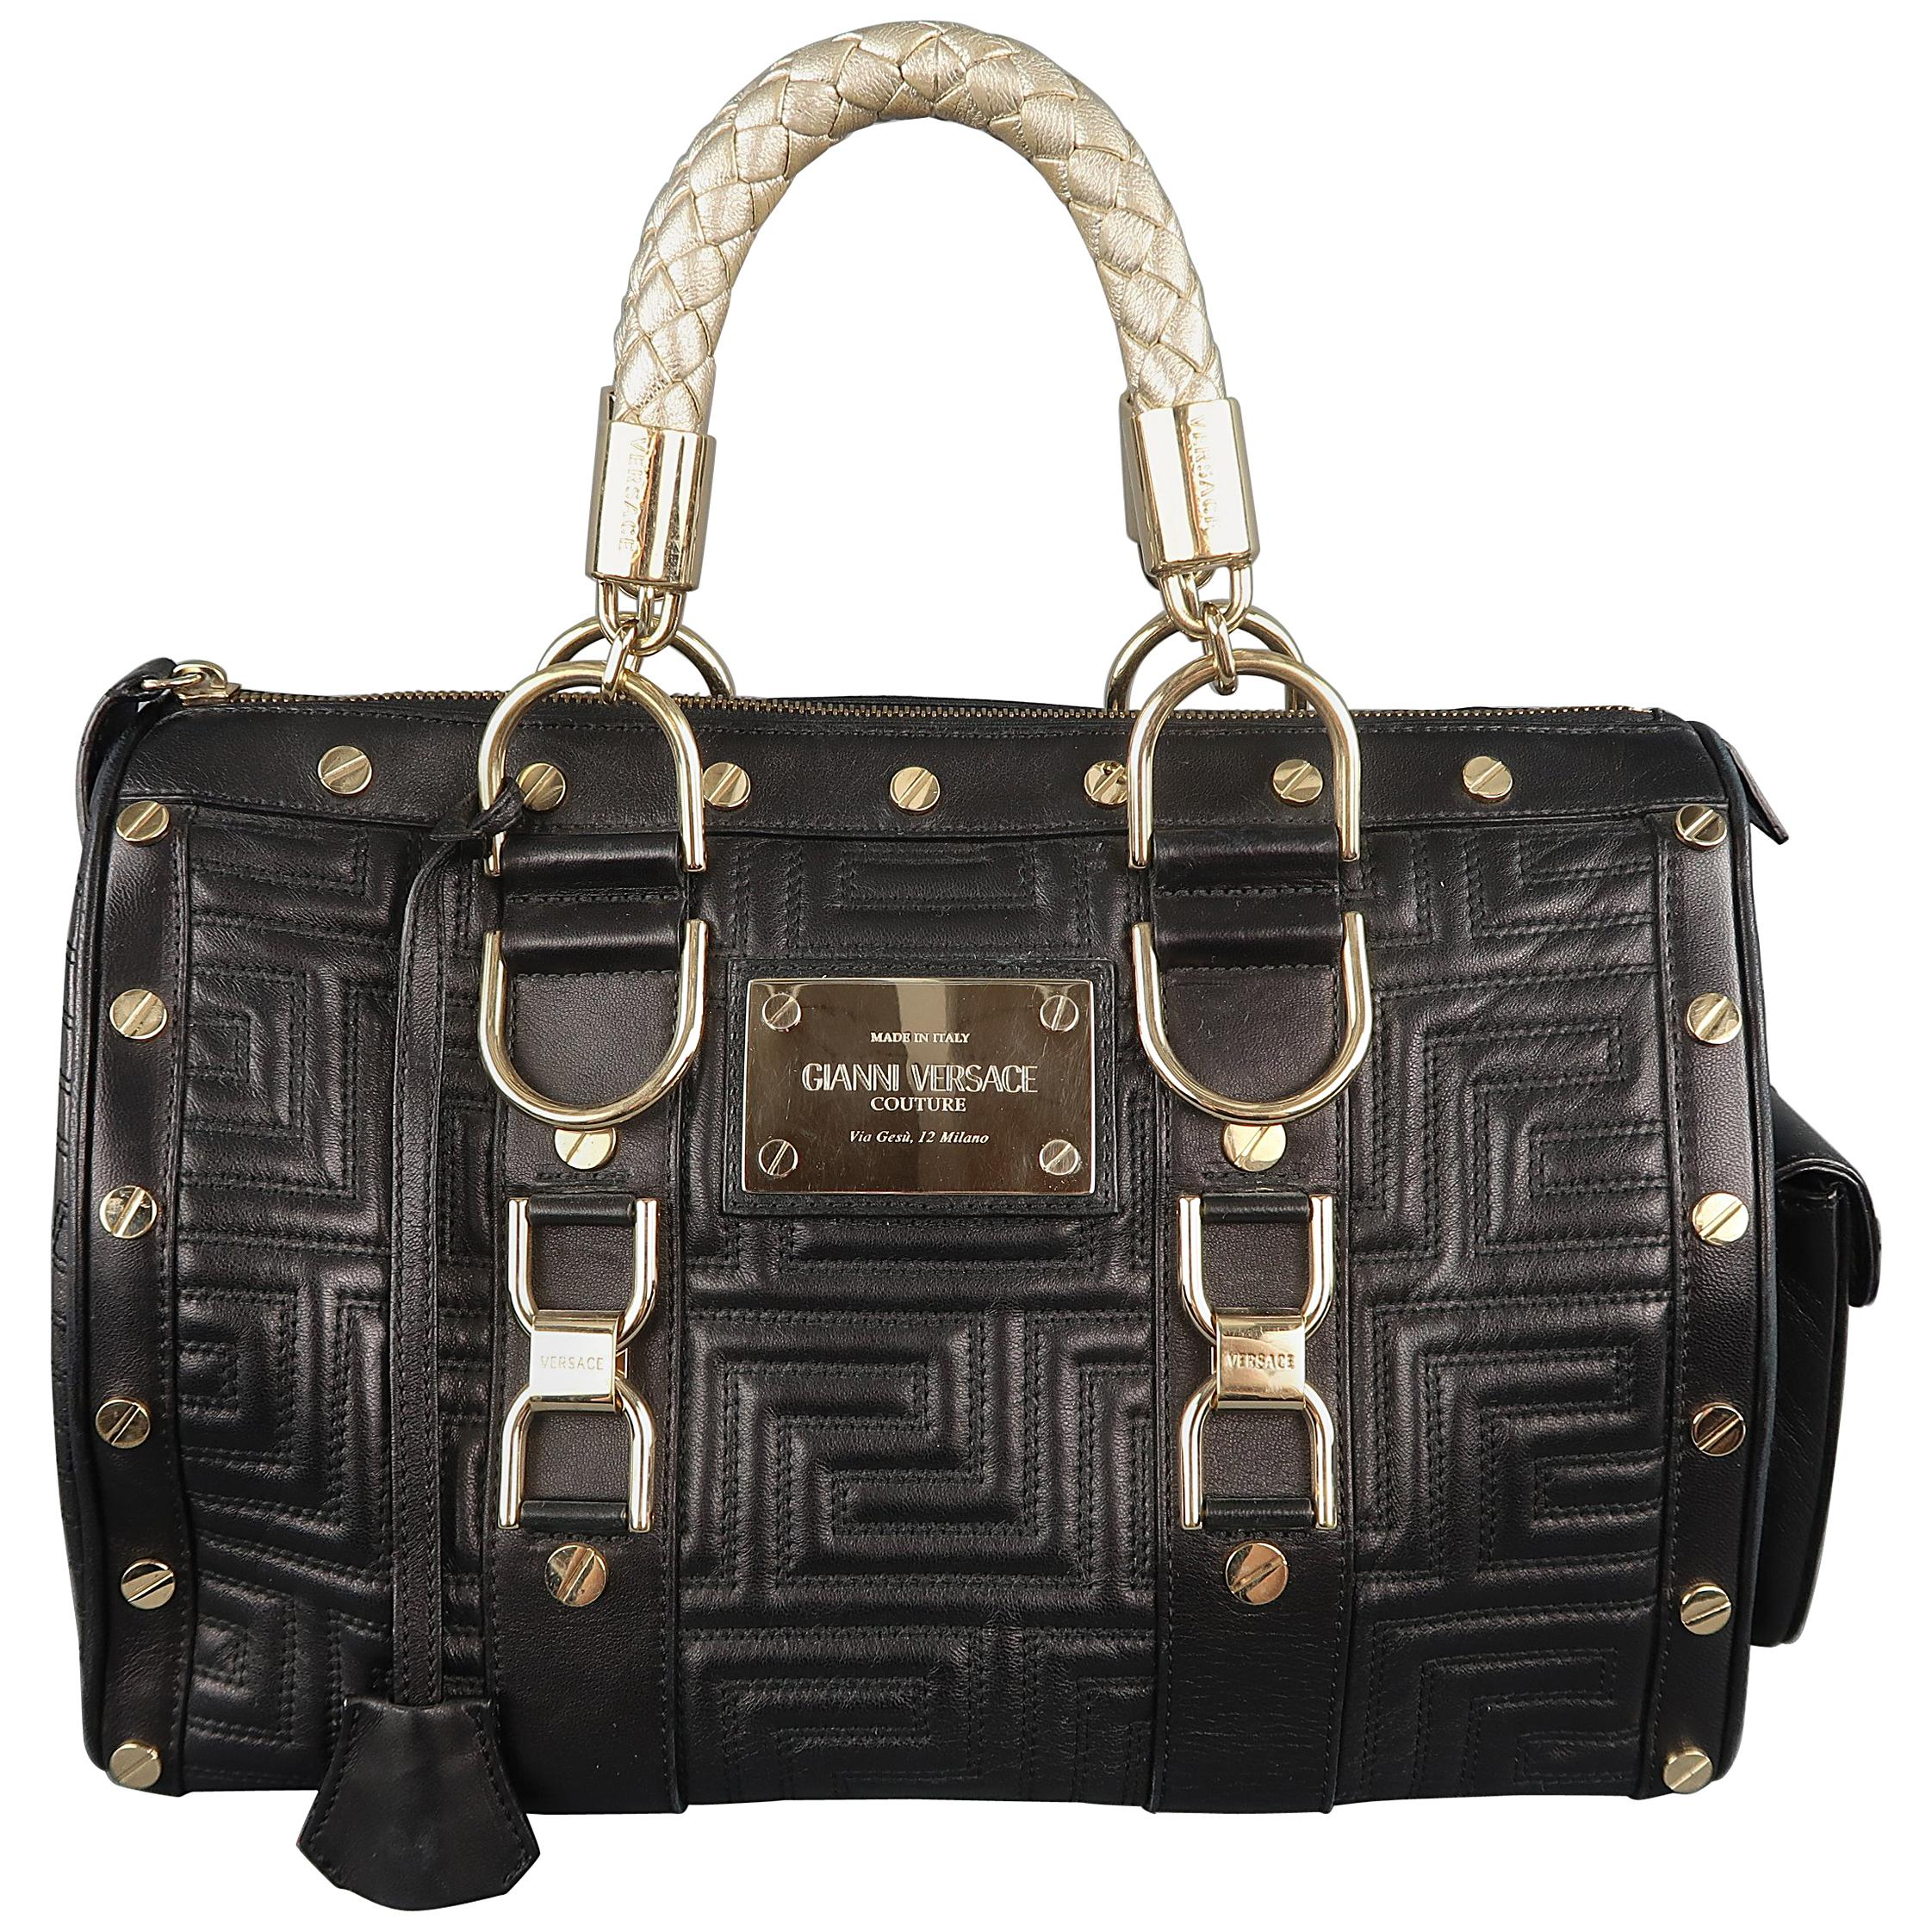 71e25fcc59 VERSACE Black and Gold Studded Leather Greca Quilted Tote Handbag For Sale  at 1stdibs